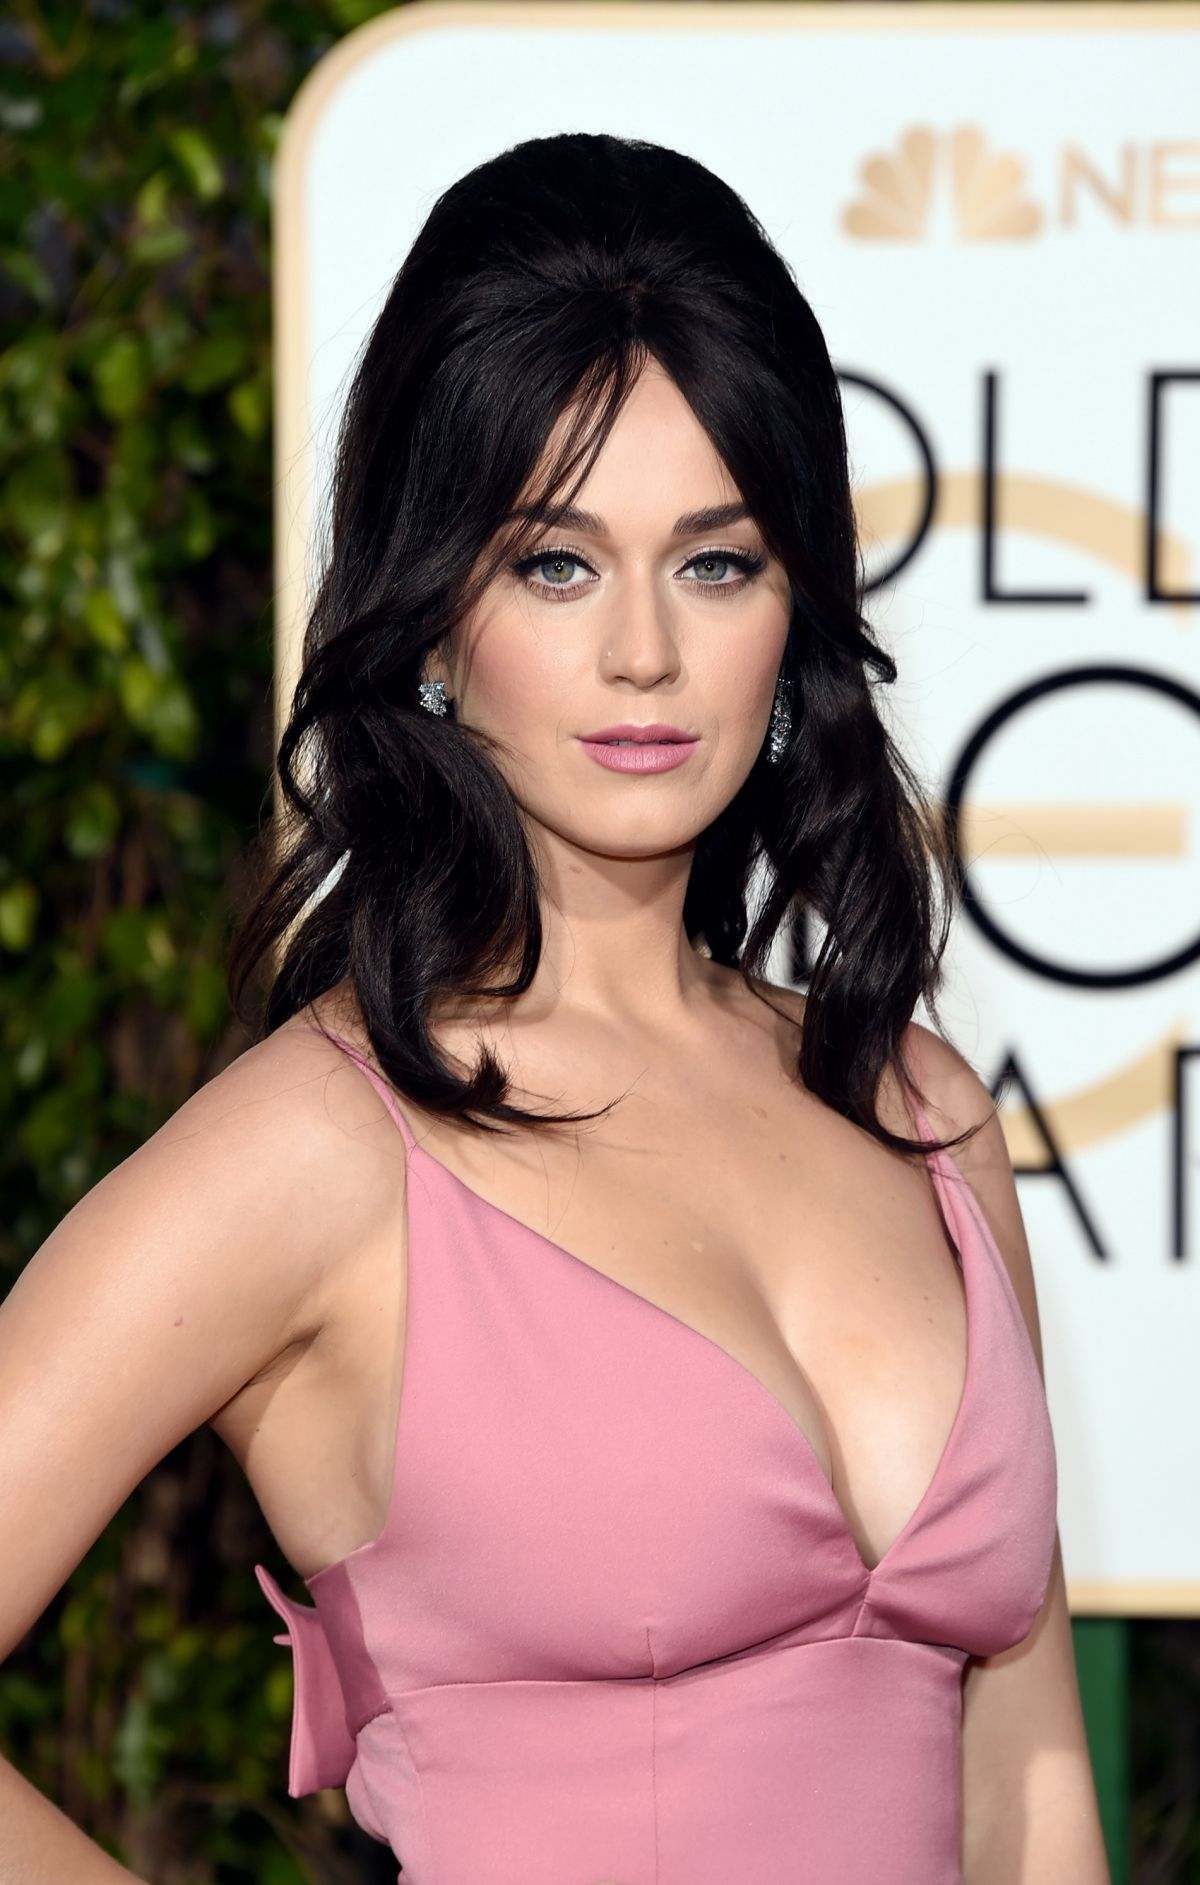 KATY PERRY at 73rd Annual Golden Globe Awards in Beverly Hills 10/01/2016 – HawtCelebs